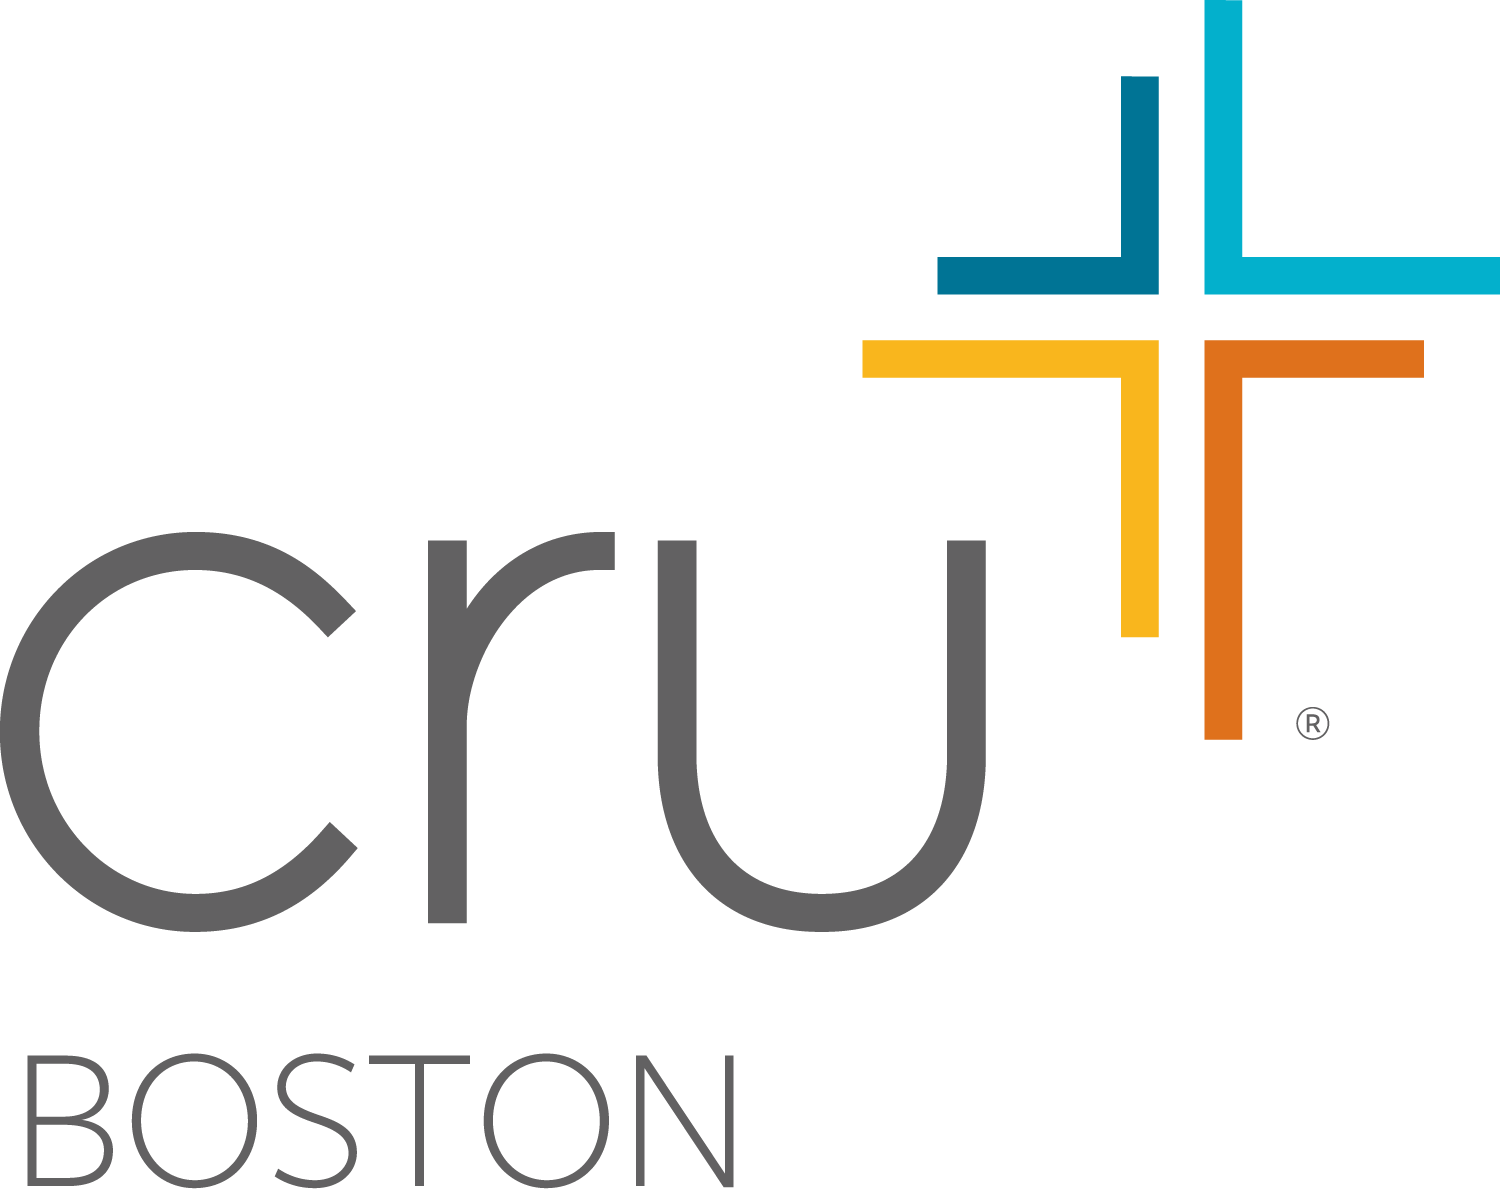 Cru Boston